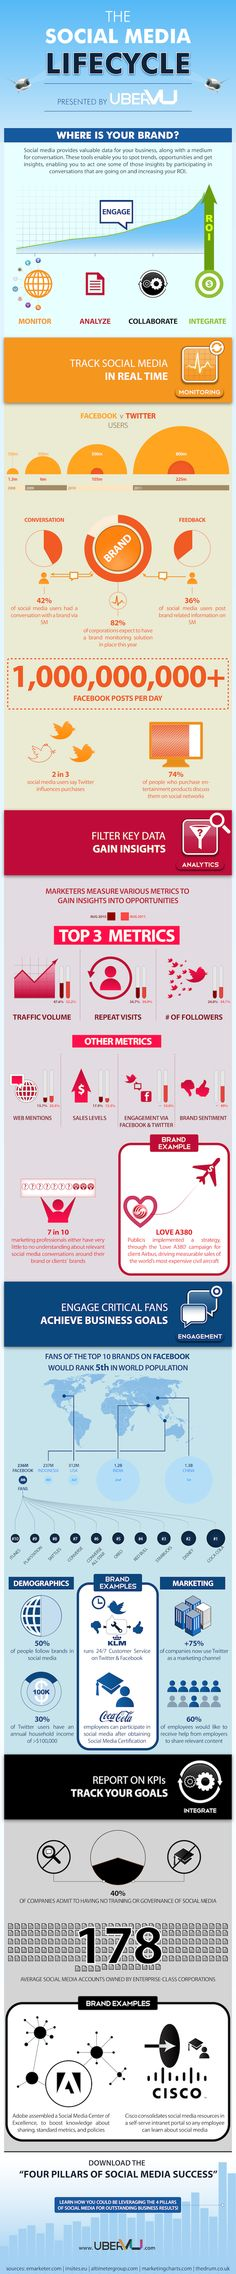 Social media lifecycle - Where is your brand??